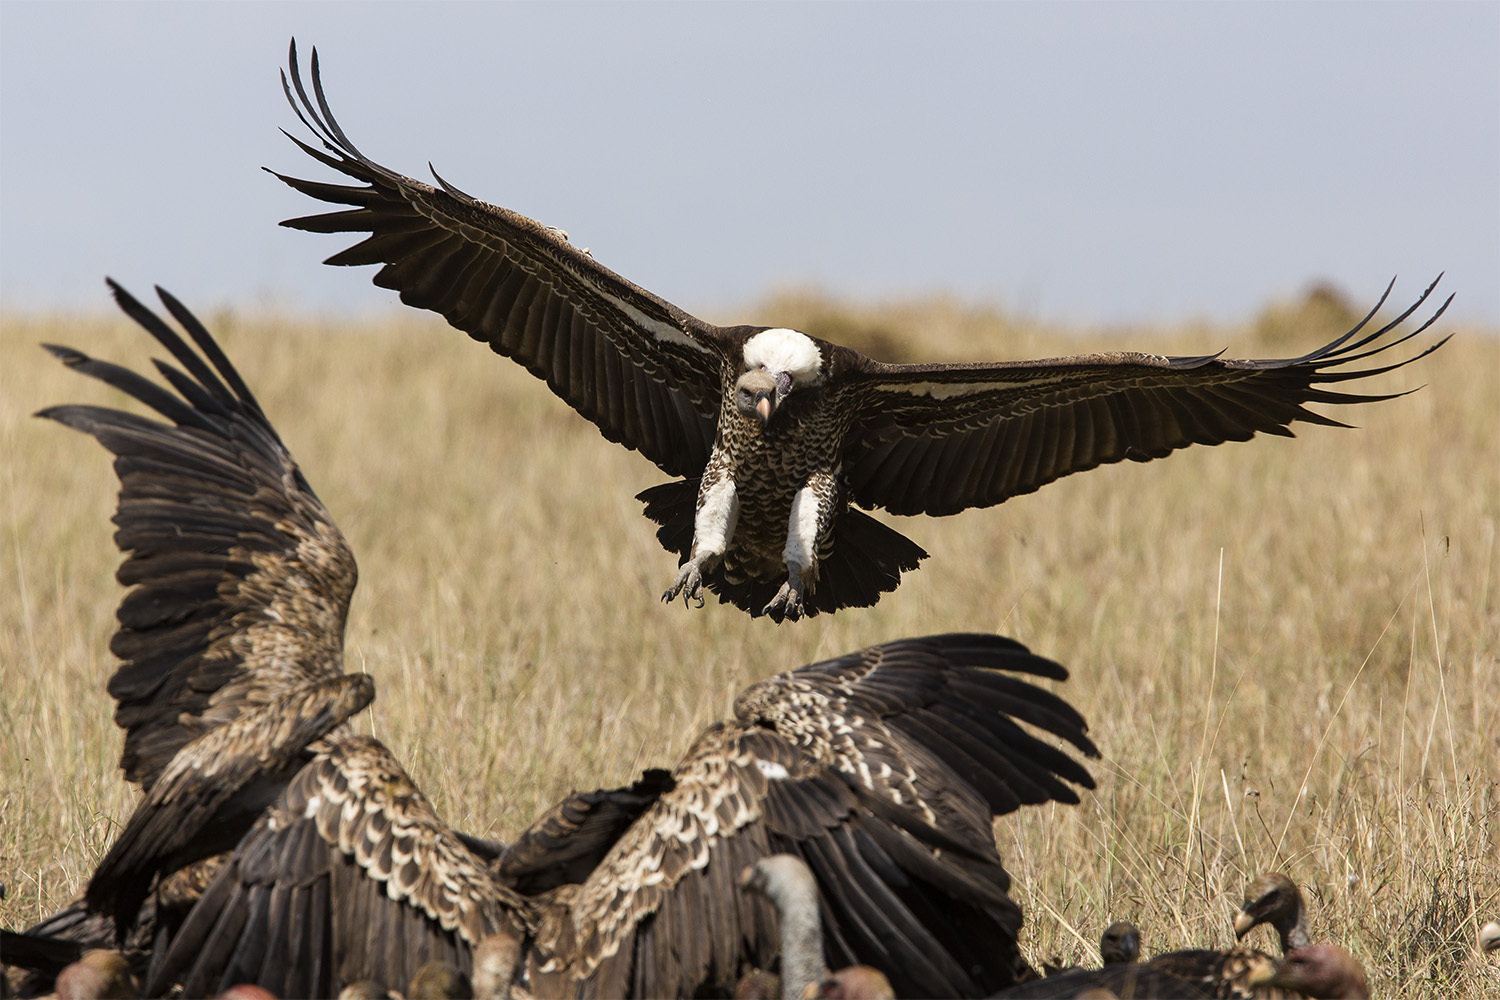 Vultures and wings